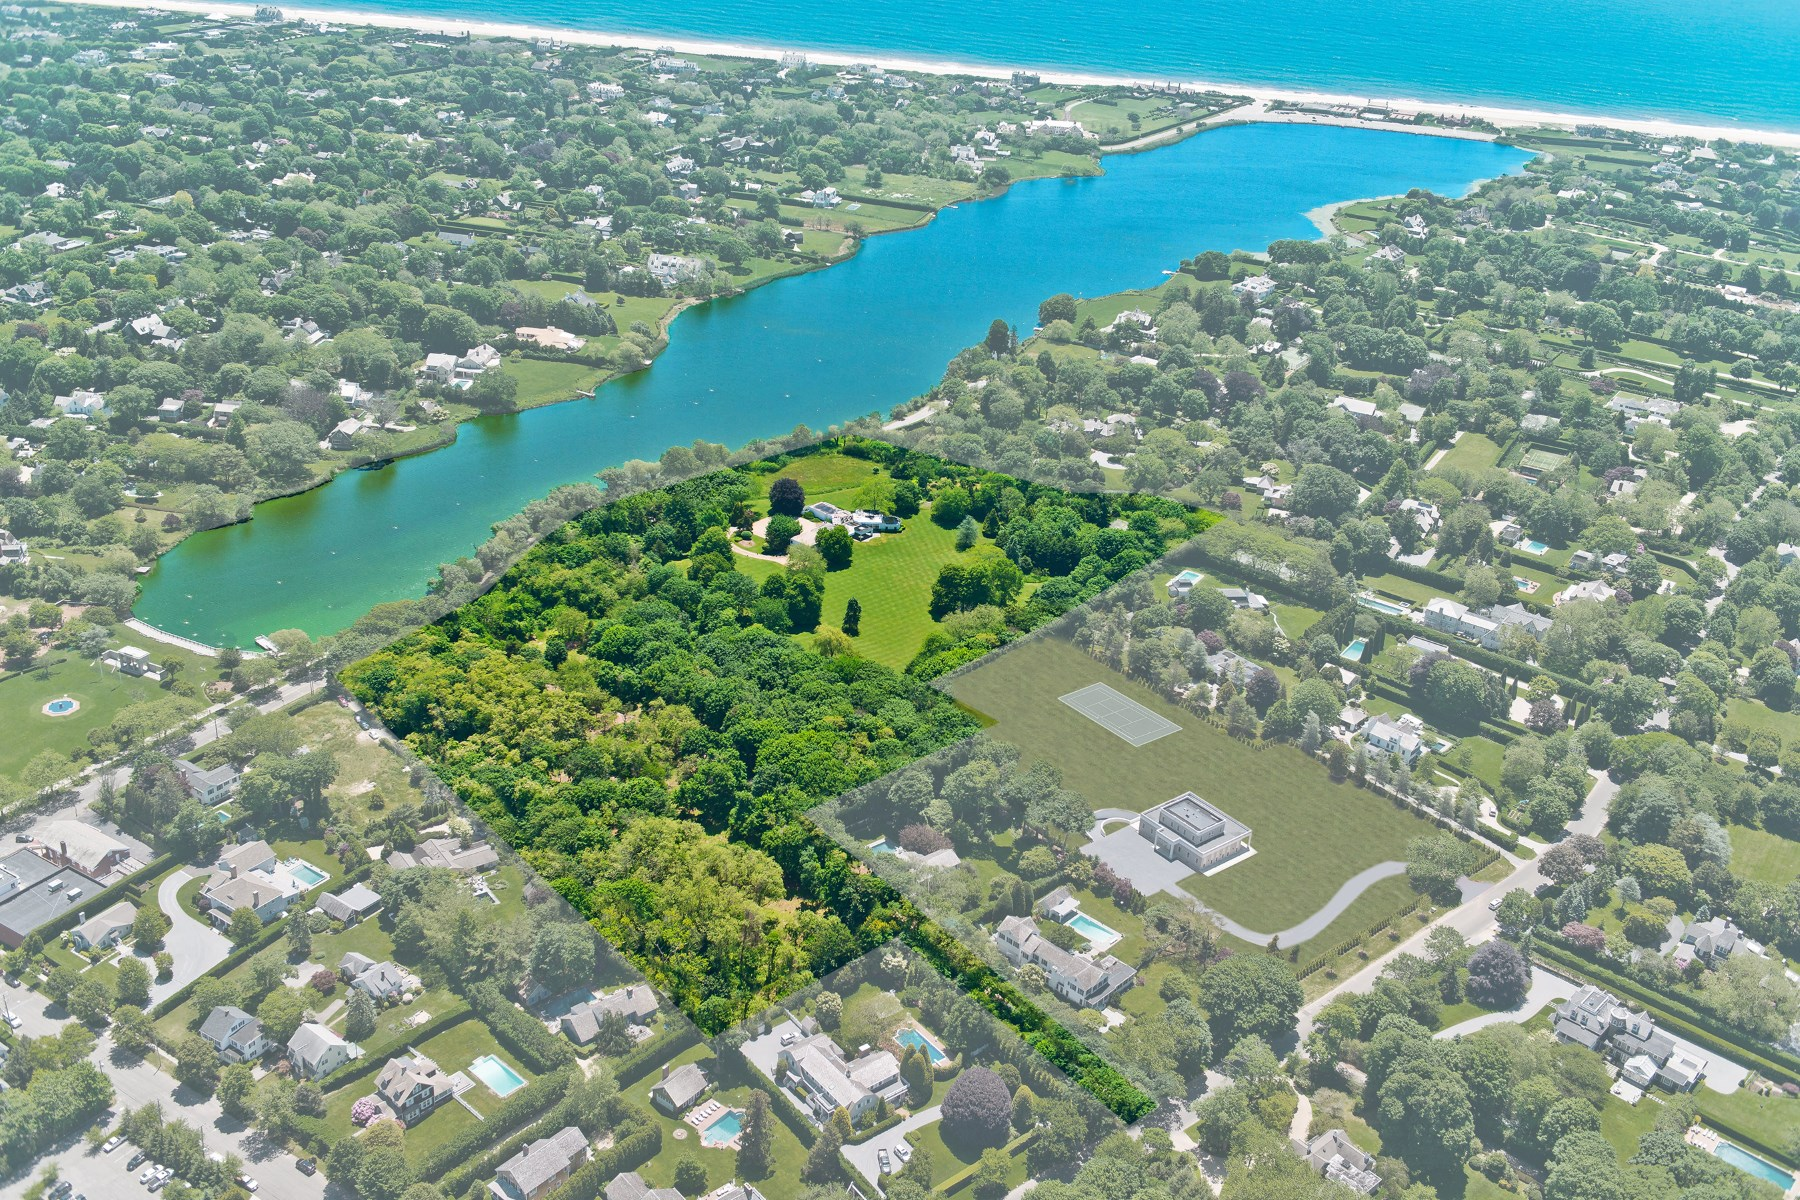 Moradia para Venda às Overlooking Lake Agawam 111, 137, 153 Pond Lane & 52 First Neck Lane 4 properties combined Southampton Estate Section, Southampton, Nova York, 11968 Estados Unidos